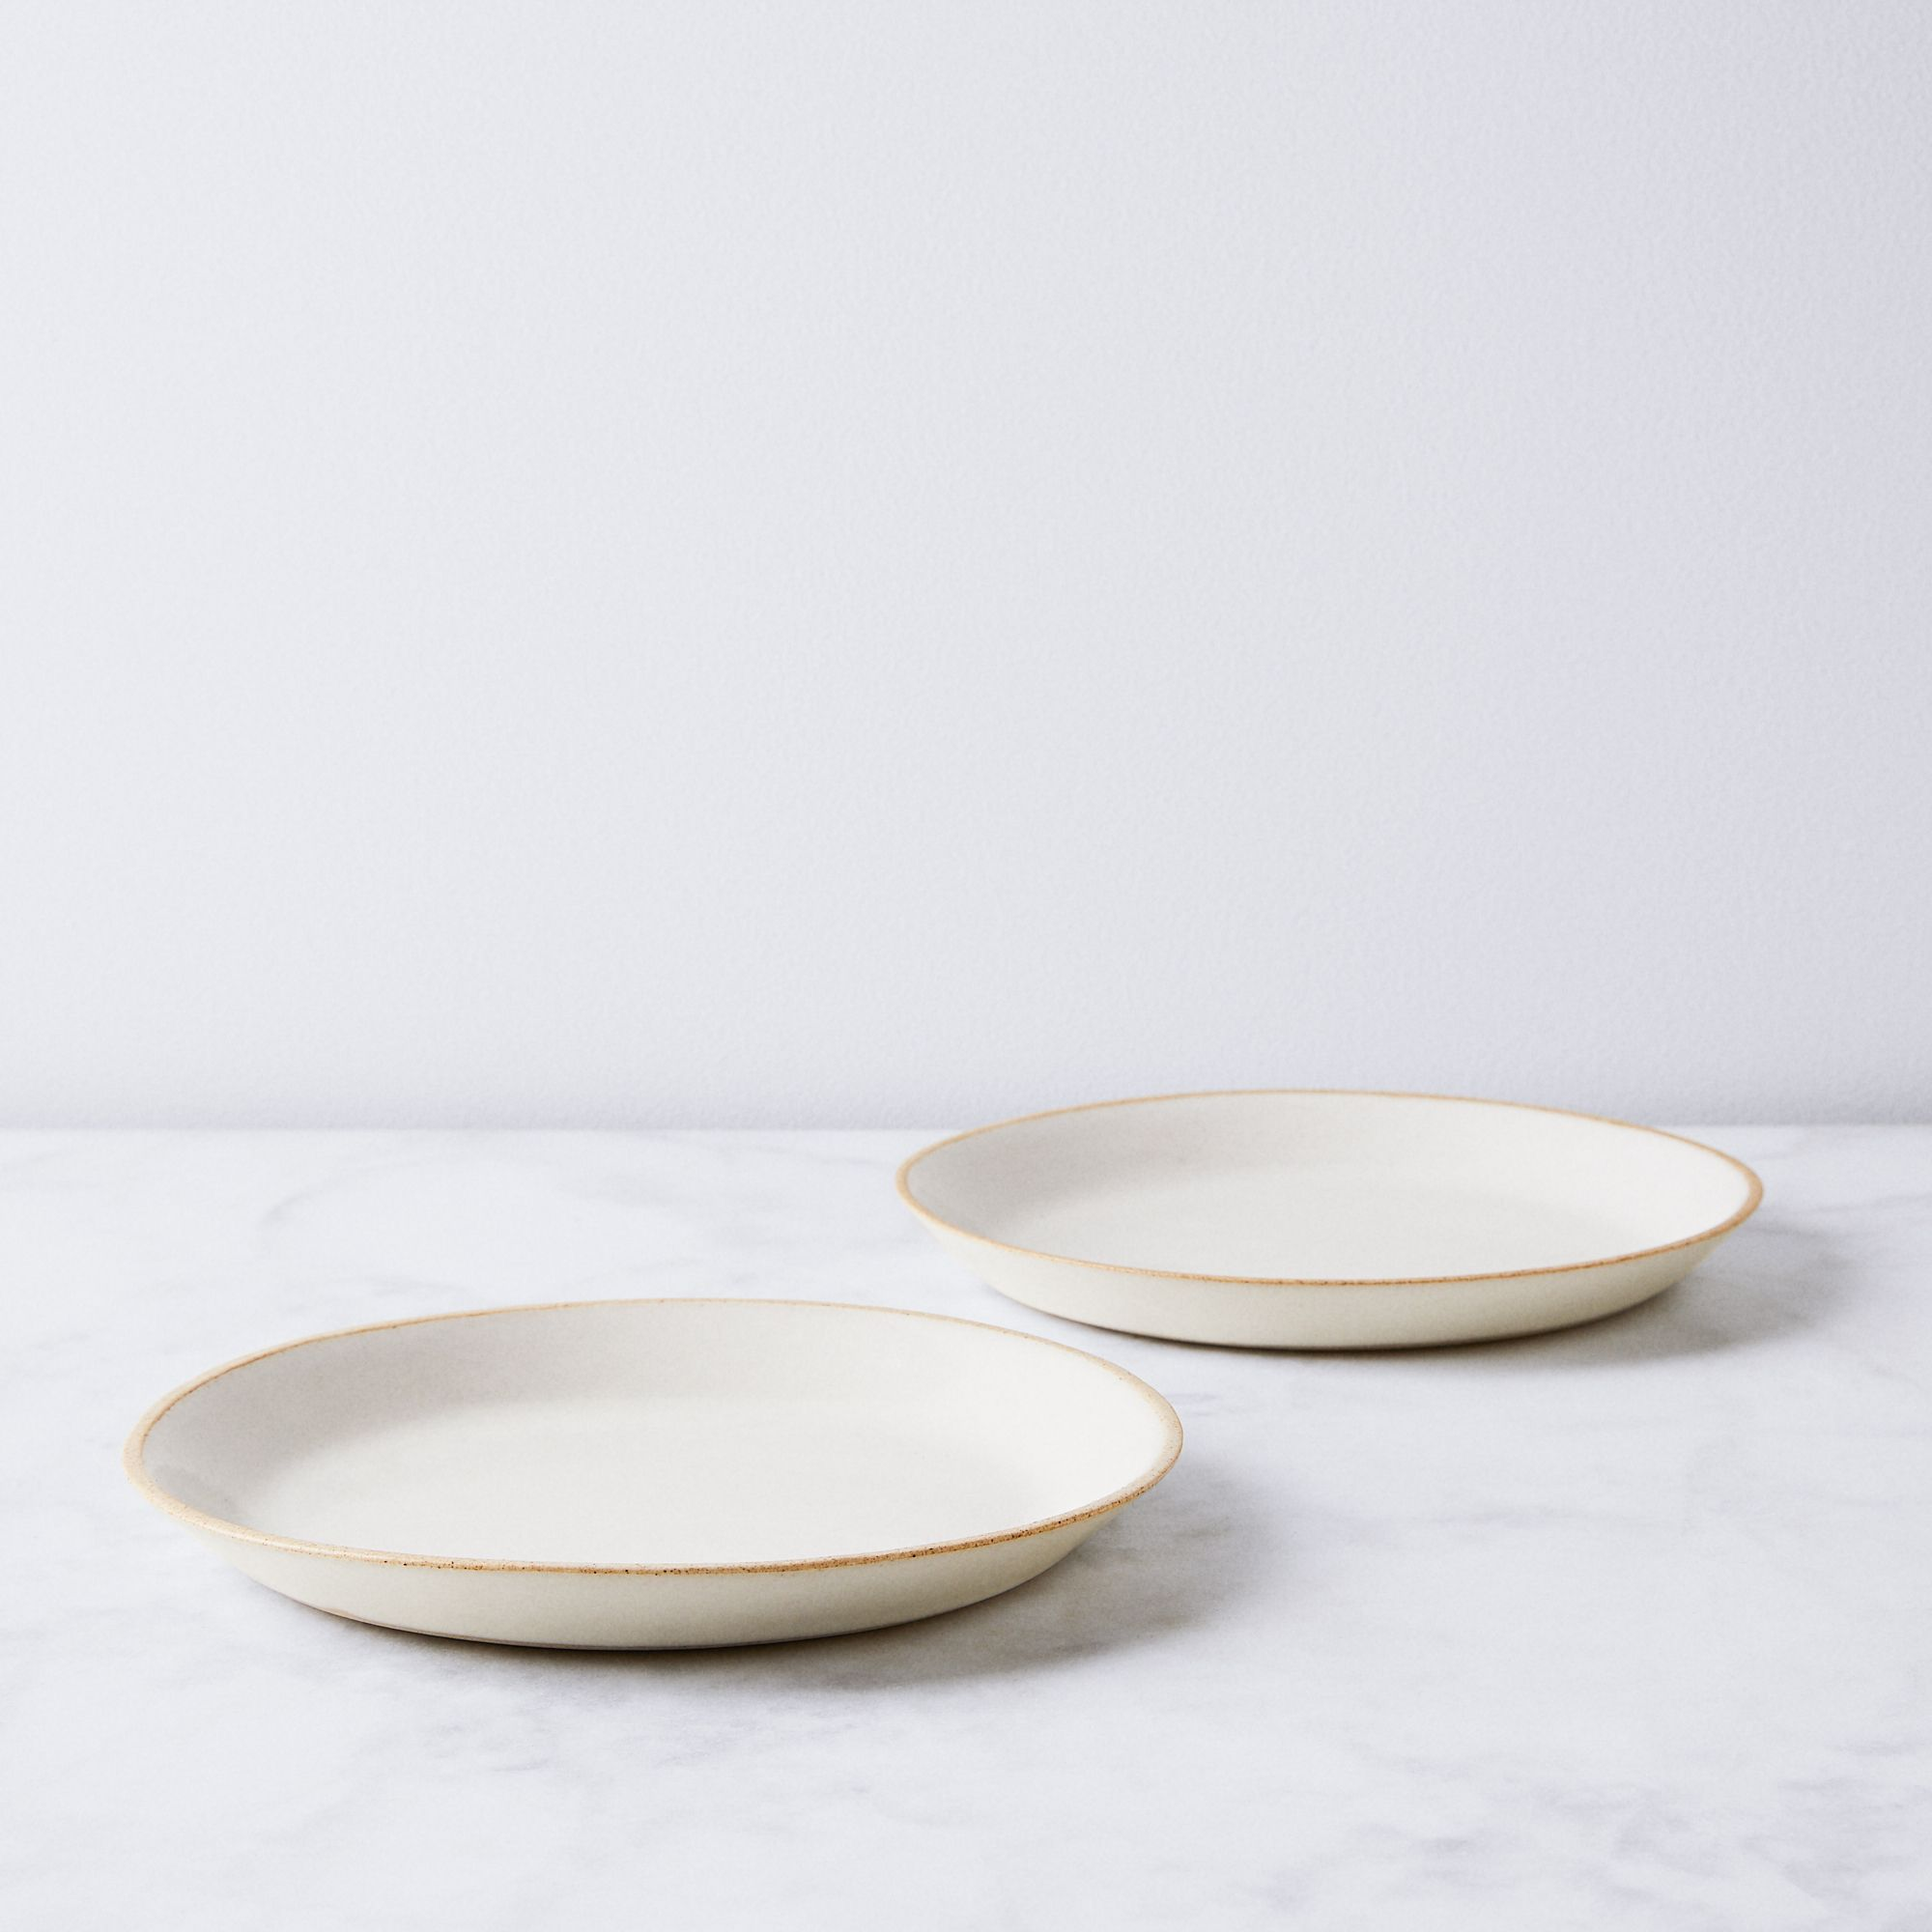 Dinnerware by Marielle Groh